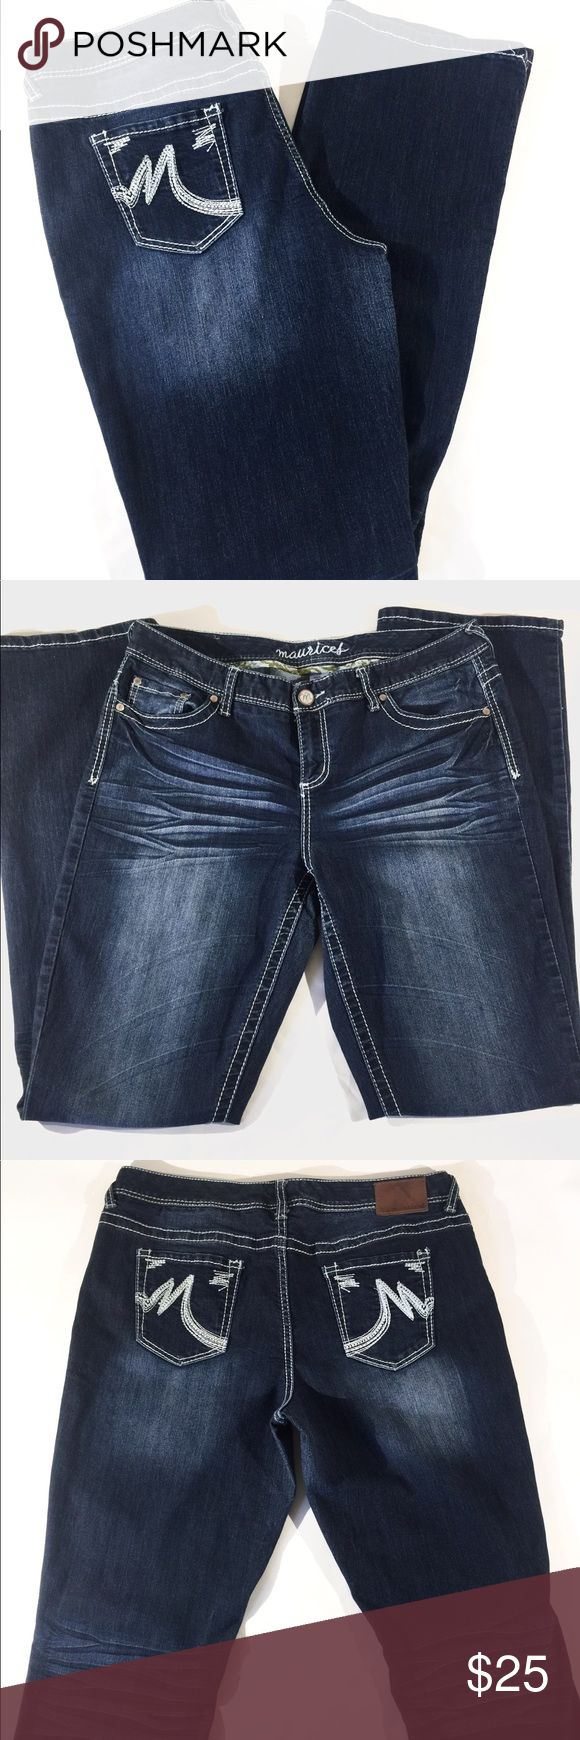 """Maurice's Women's Dark-Wash Jeans Size 13/14 L These are a nice pair of Maurice's Boot-Cut Jeans.  They are a dark wash with detailed stitching.  Size: Women's 13/14 Long They are in Excellent Condition.   They measure approximately:  Waist: 18""""    Inseam: 31 1/2""""     Rise: 91/2""""   They are made with 75% cotton, 25% polyester, 2% spandex. Jeans Boot Cut"""